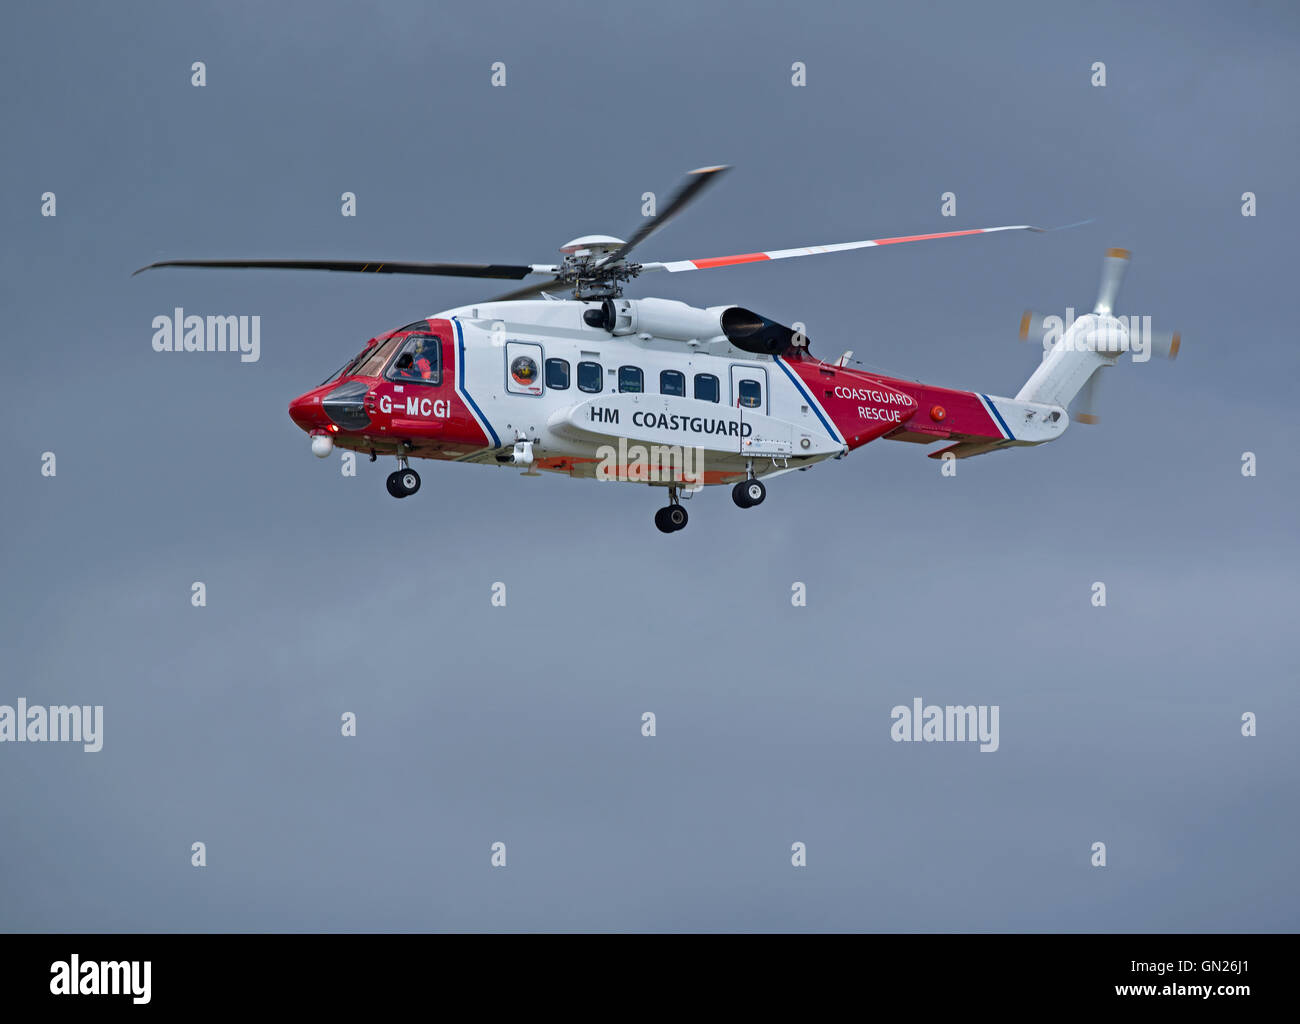 Sikorsky S-92A Coastguard SAR Helicopter (G-MCGI) based at Inverness. SCO 11,201. - Stock Image